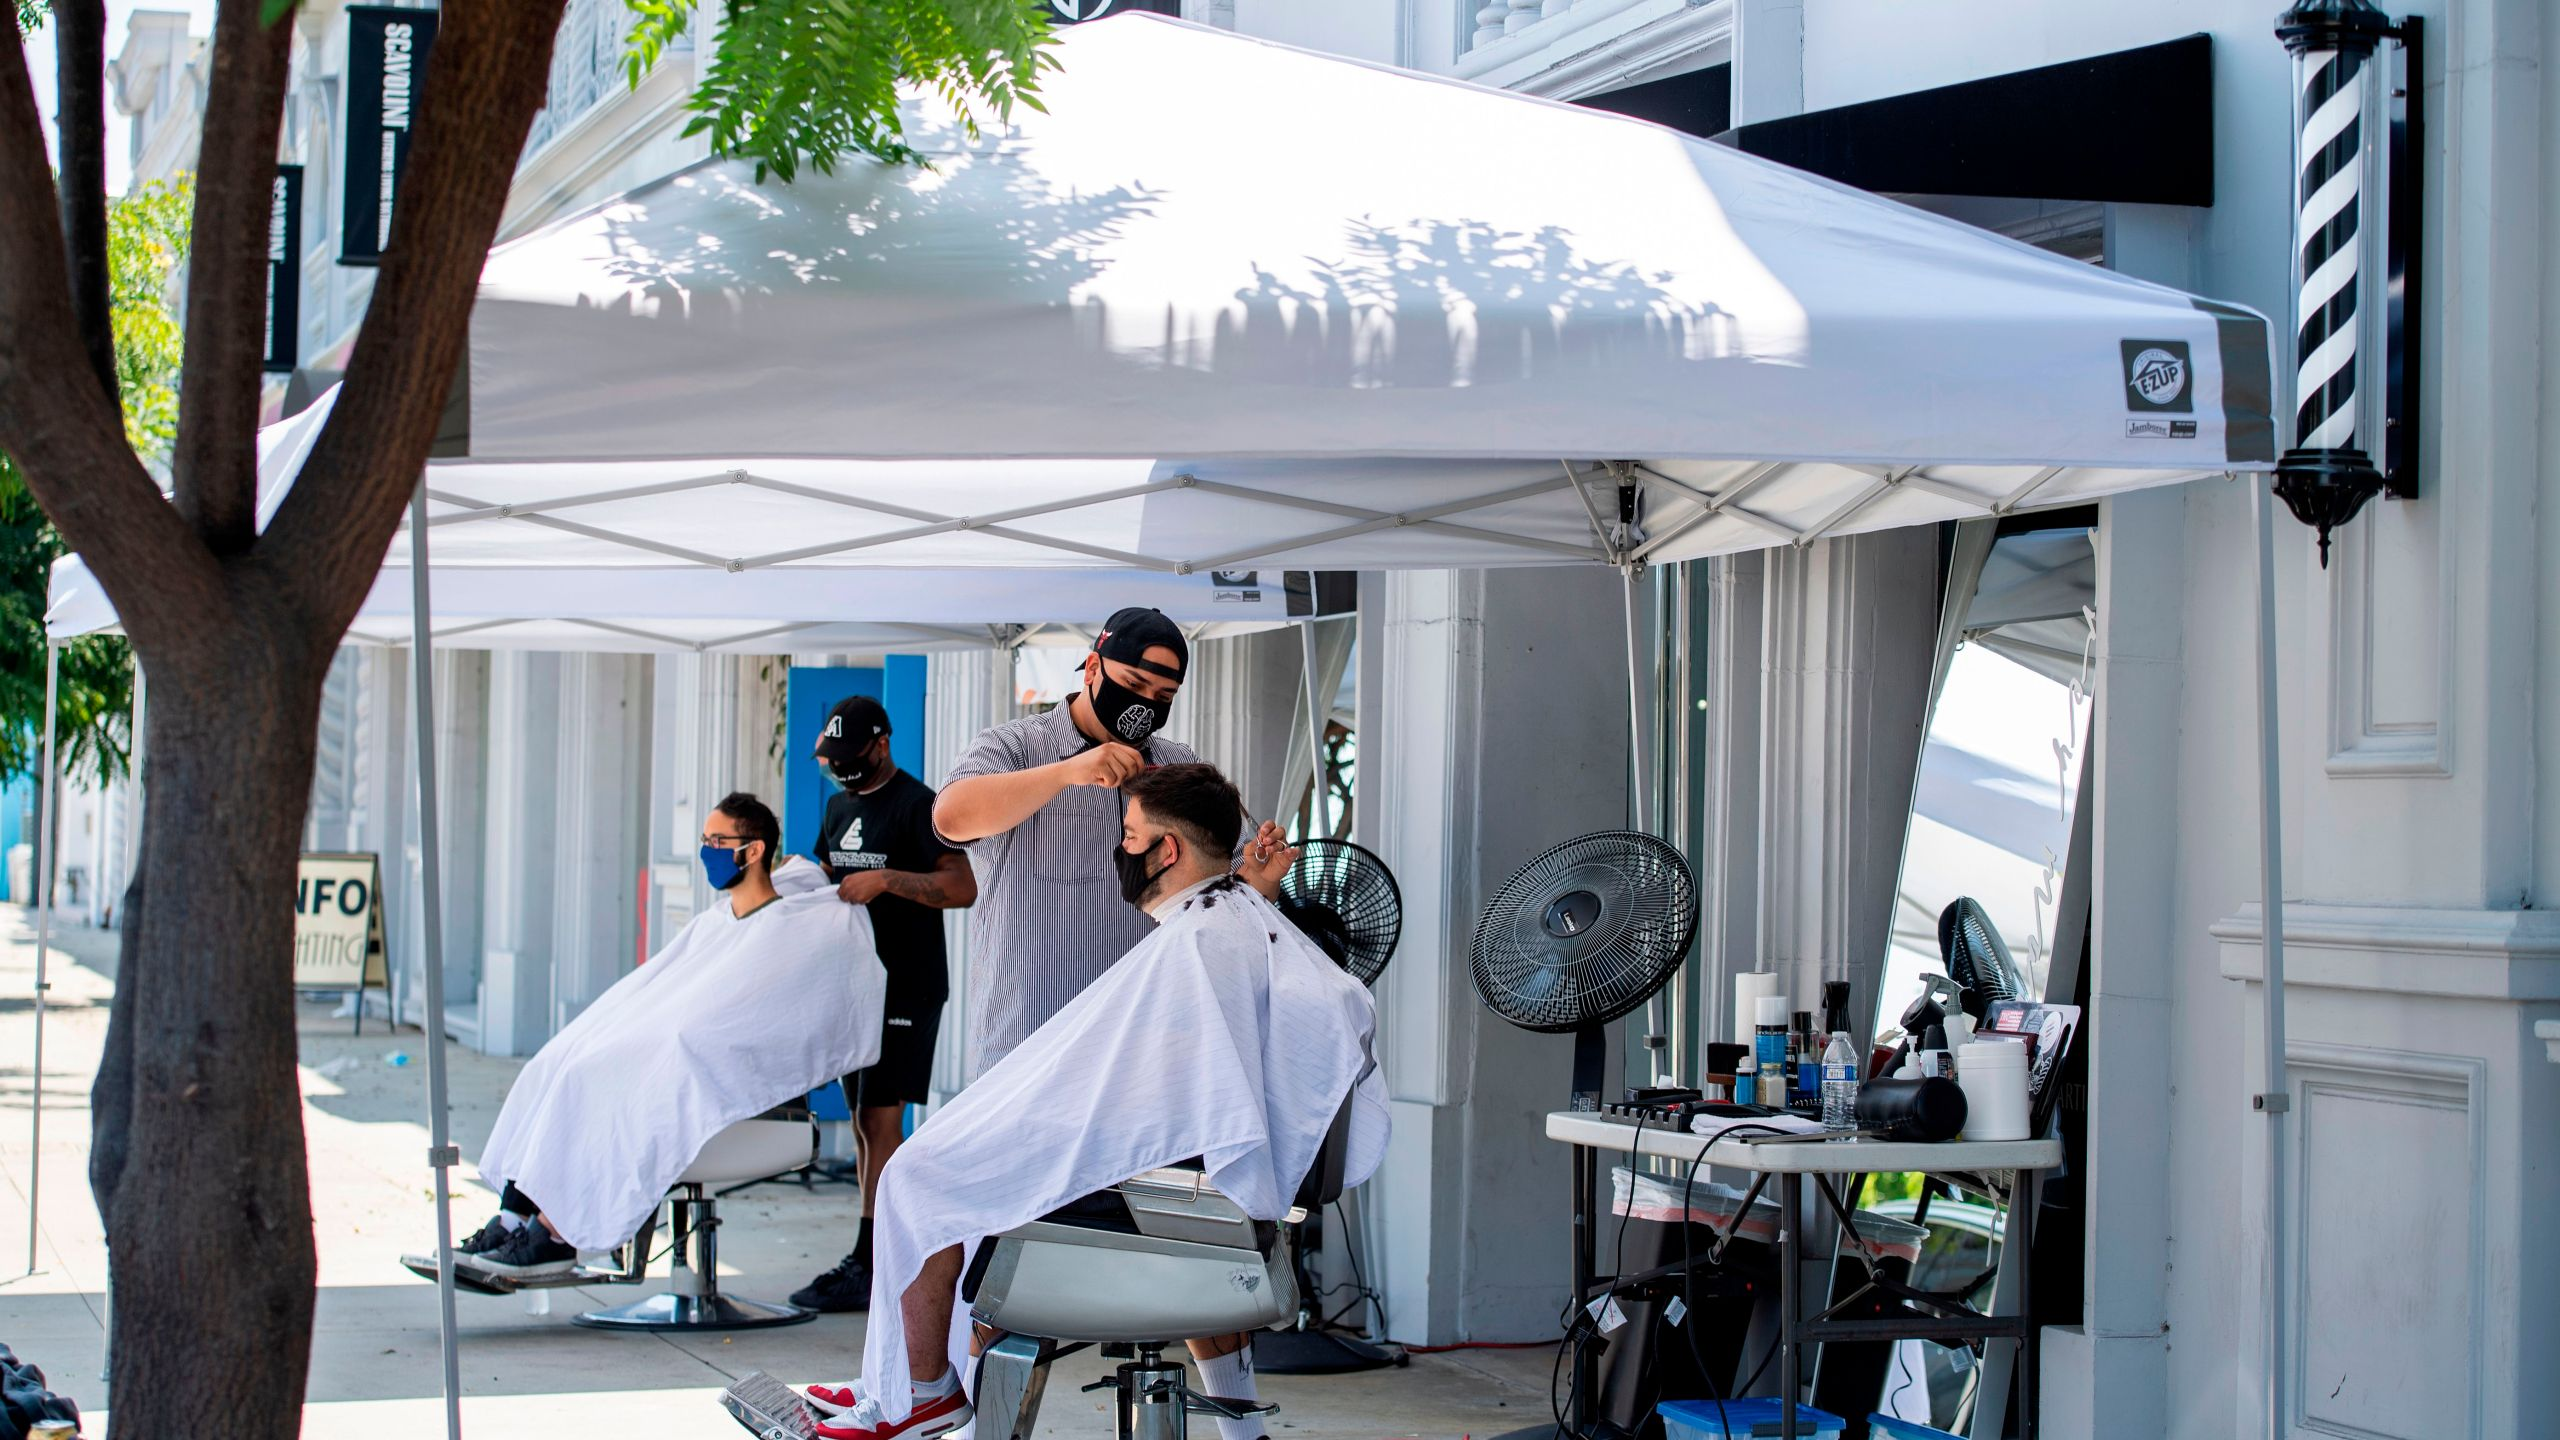 Stylists from Grey Matter LA cut clients' hair, at a distance on the sidewalk and while wearing facemasks on Aug. 4, 2020, in Los Angeles. (VALERIE MACON/AFP via Getty Images)